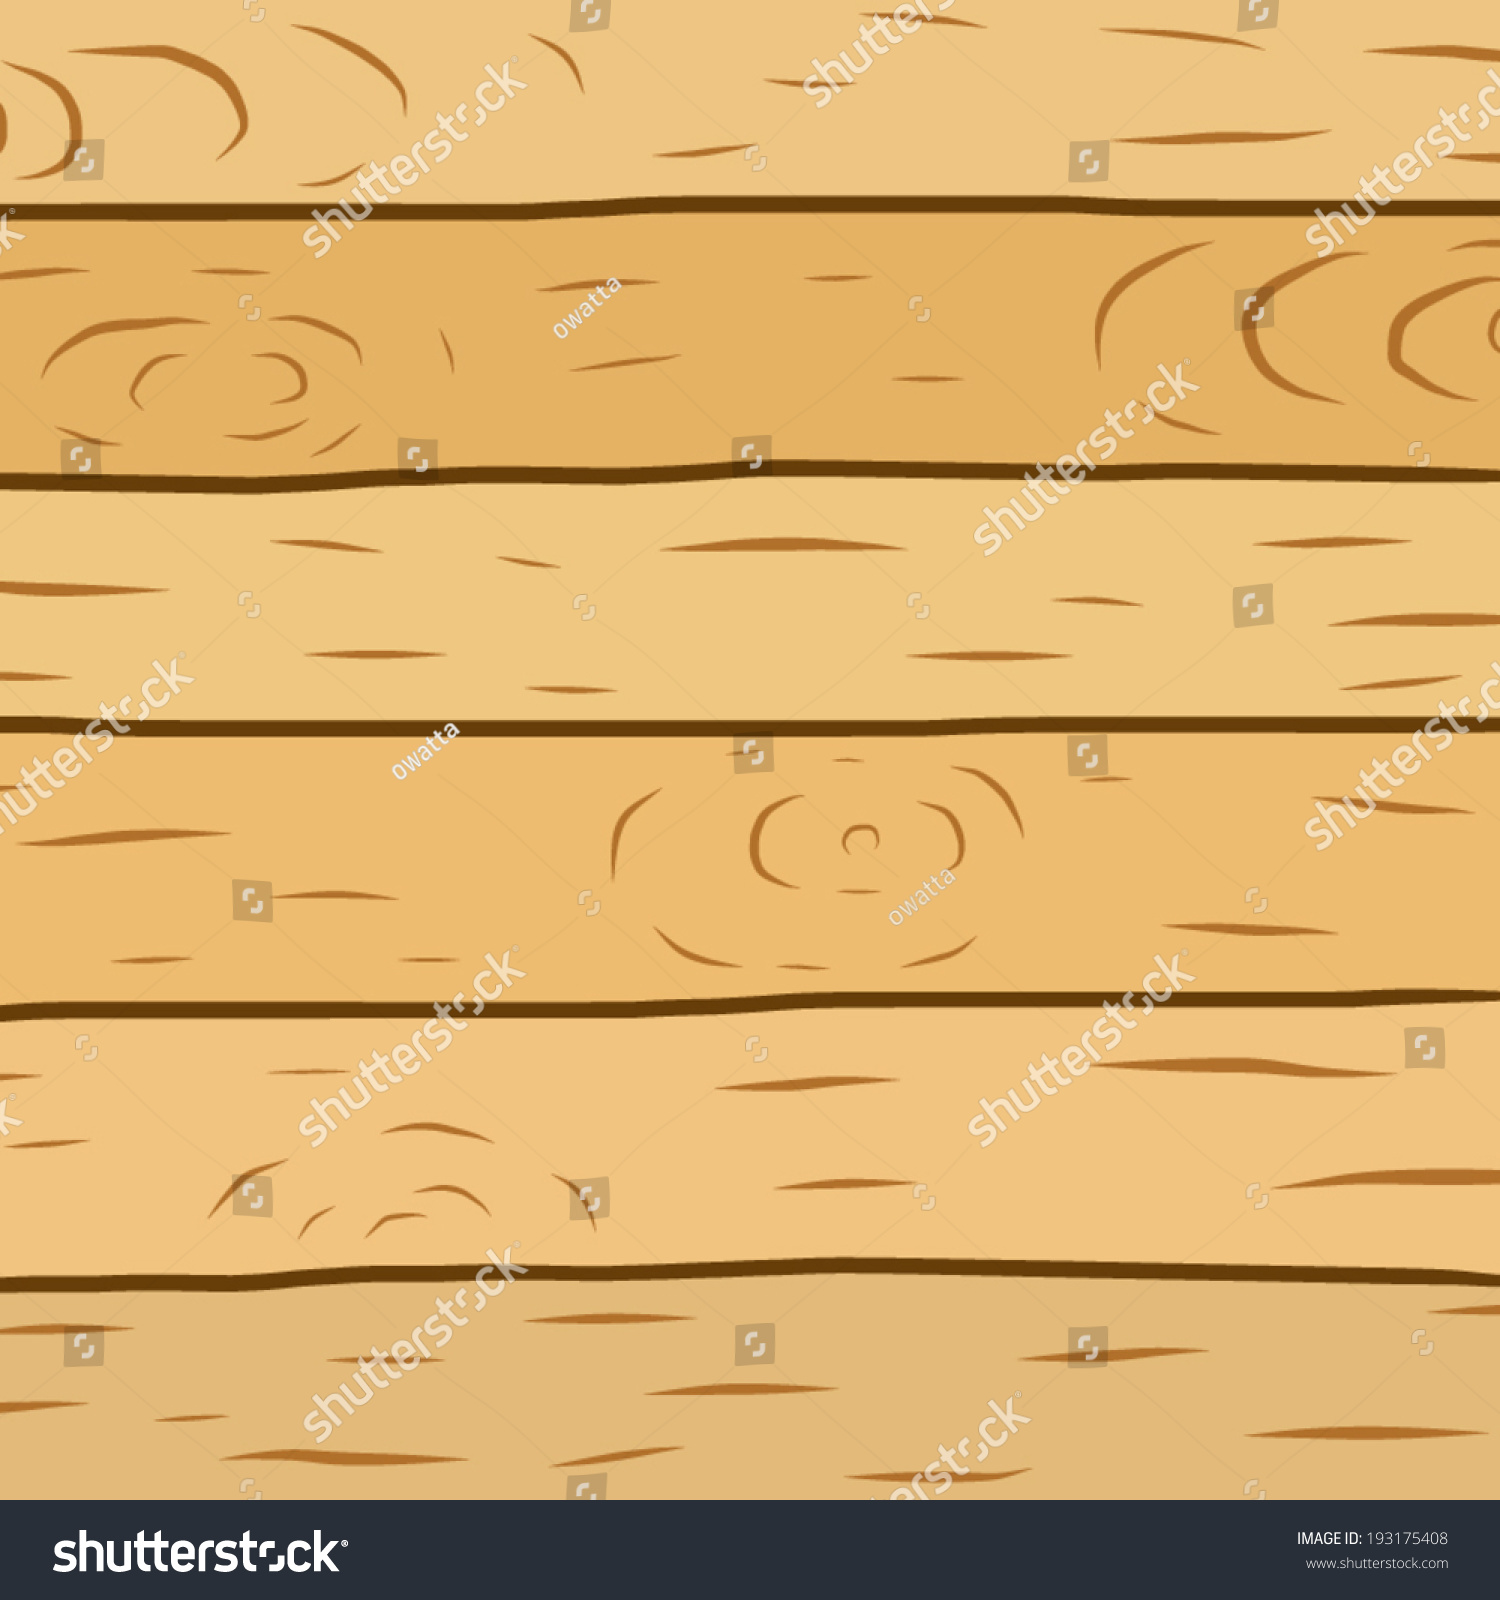 Wooden Plank Cartoon ~ Wood plank brown texture background cartoon stock vector